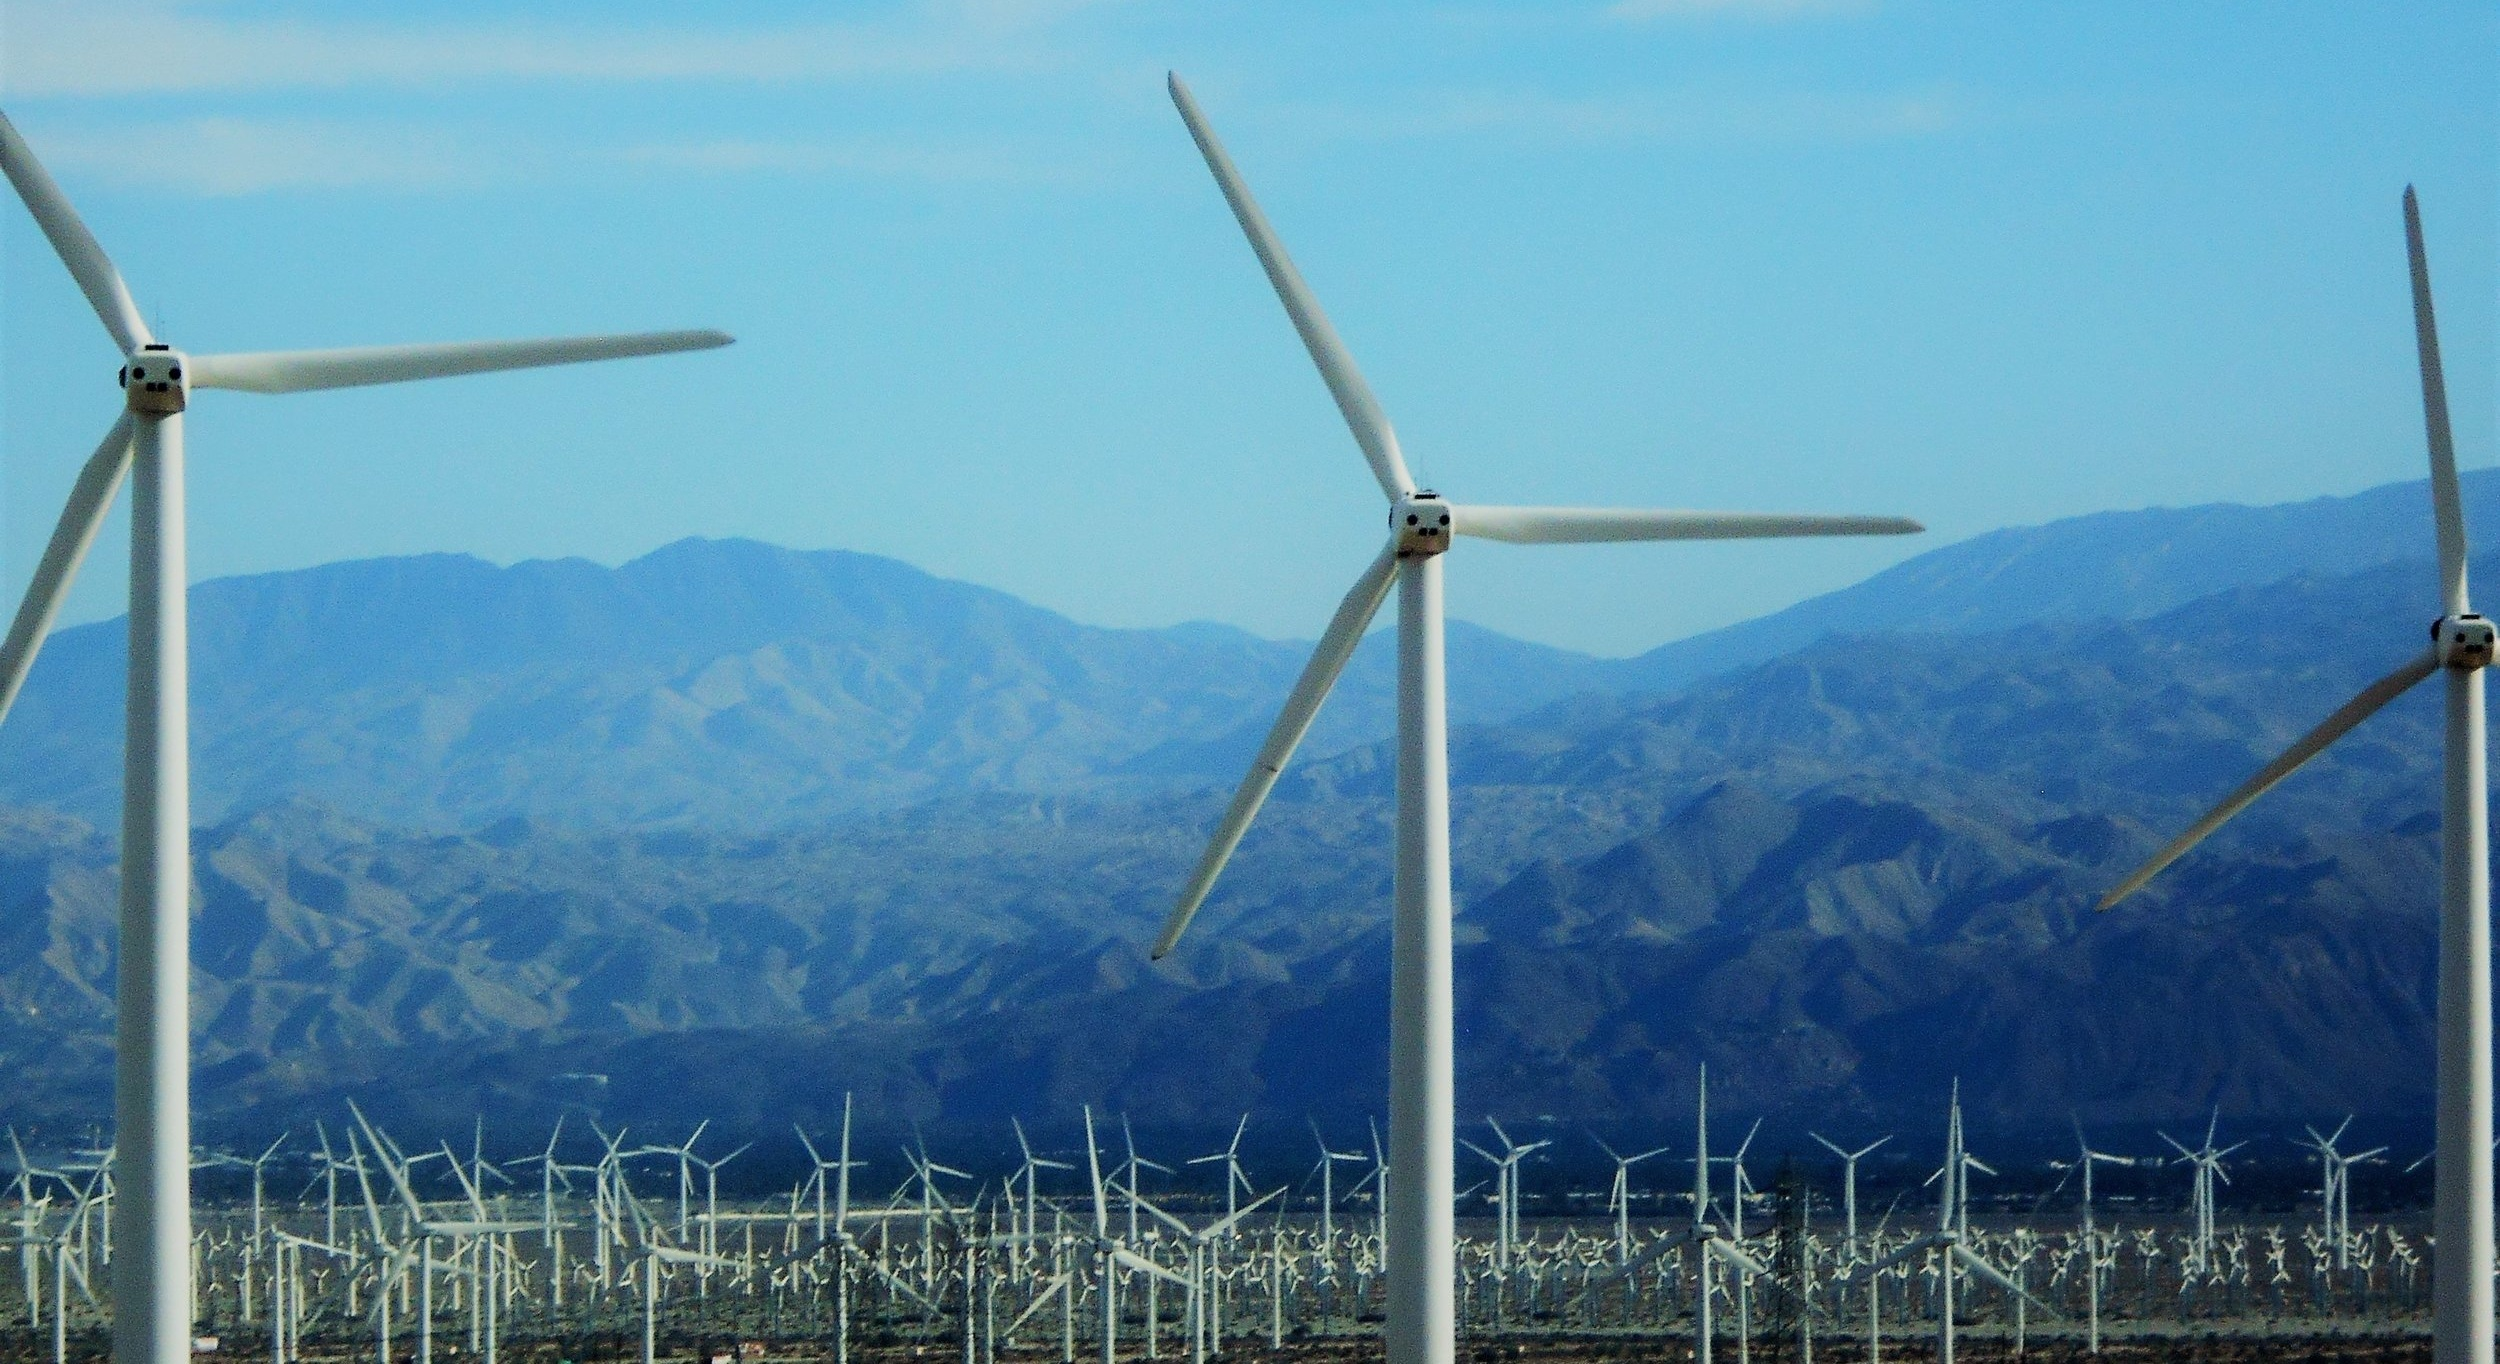 wind-turbines-at-the-wind-farm-in-the-desert-alternative-power-is-generated-by-hundreds-of-wind-at_t20_kowwyr.jpg